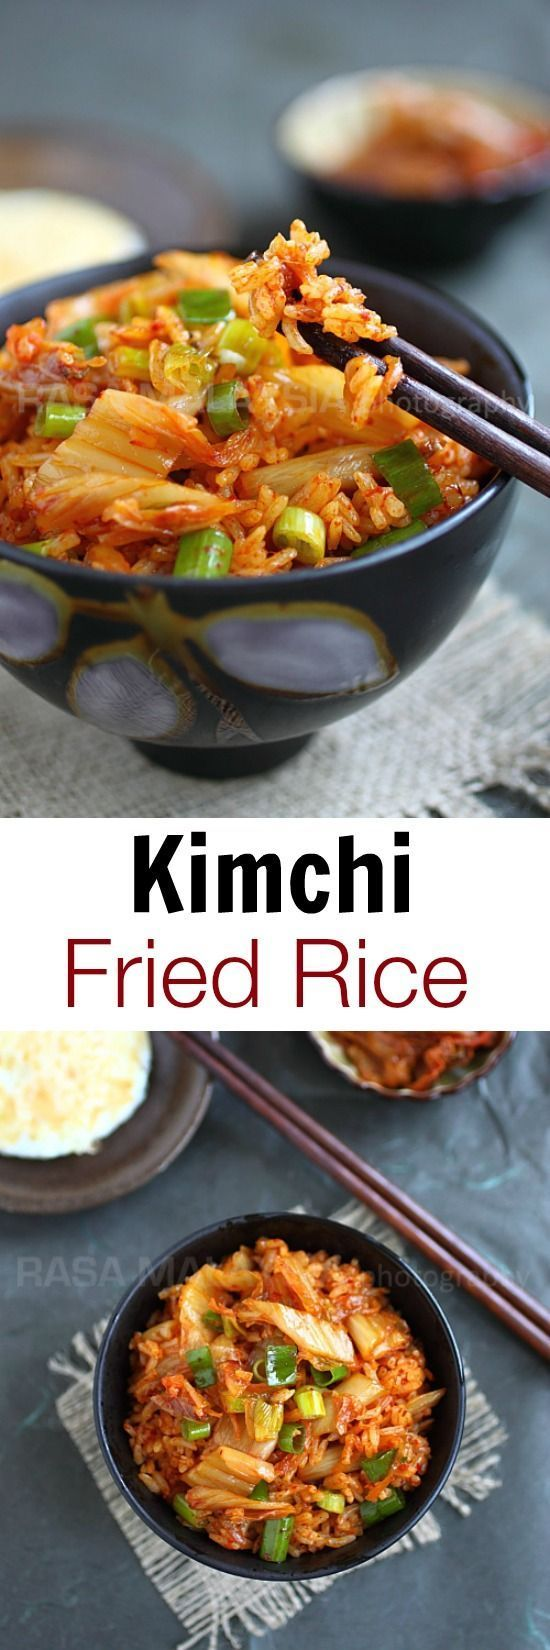 Kimchi Fried Rice - the easiest and most delicious fried rice EVER! Made with kimchi and rice. Get the recipe!!! | rasamalaysia.com